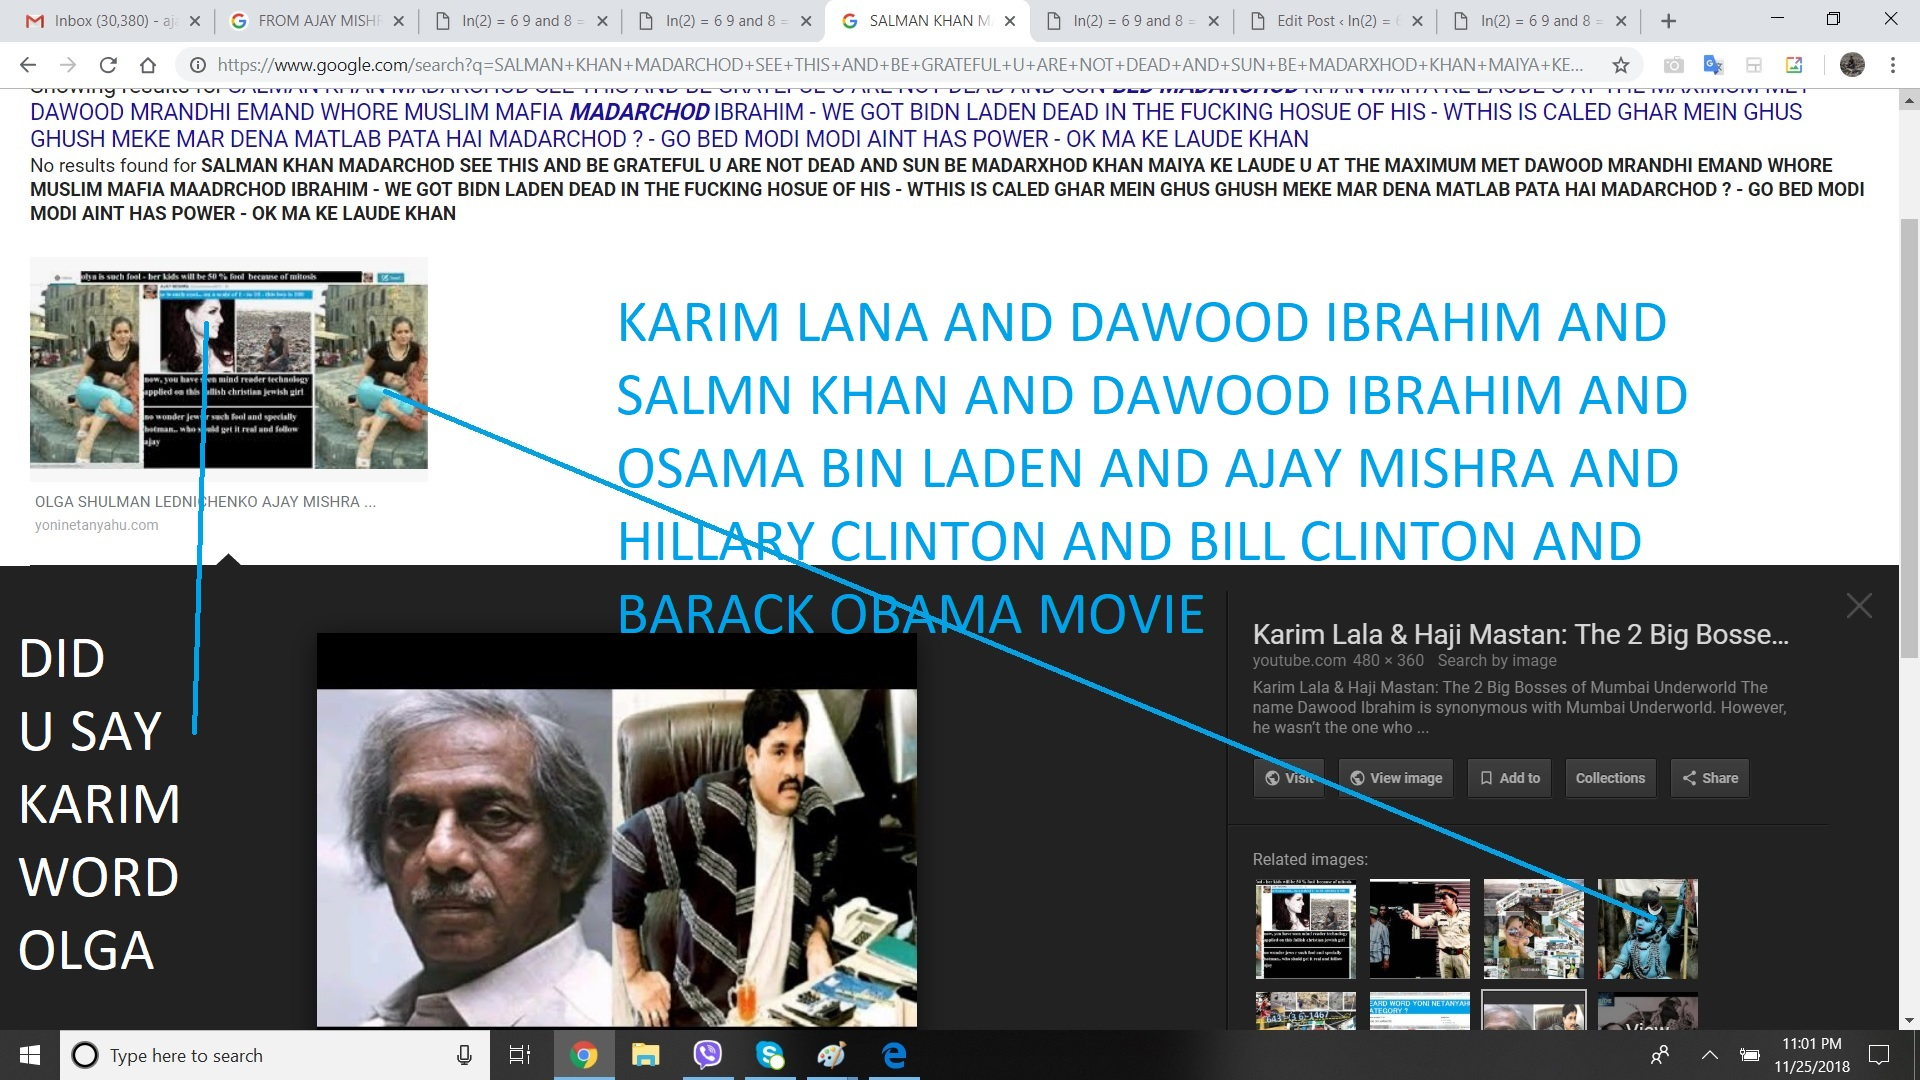 KARIM LANA AND DAWOOD IBRAHIM AND SALMN KHAN AND DAWOOD IBRAHIM AND OSAMA BIN LADEN AND AJAY MISHRA AND HILLARY CLINTON AND BILL CLINTON AND BARACK OBAMA MOVIE